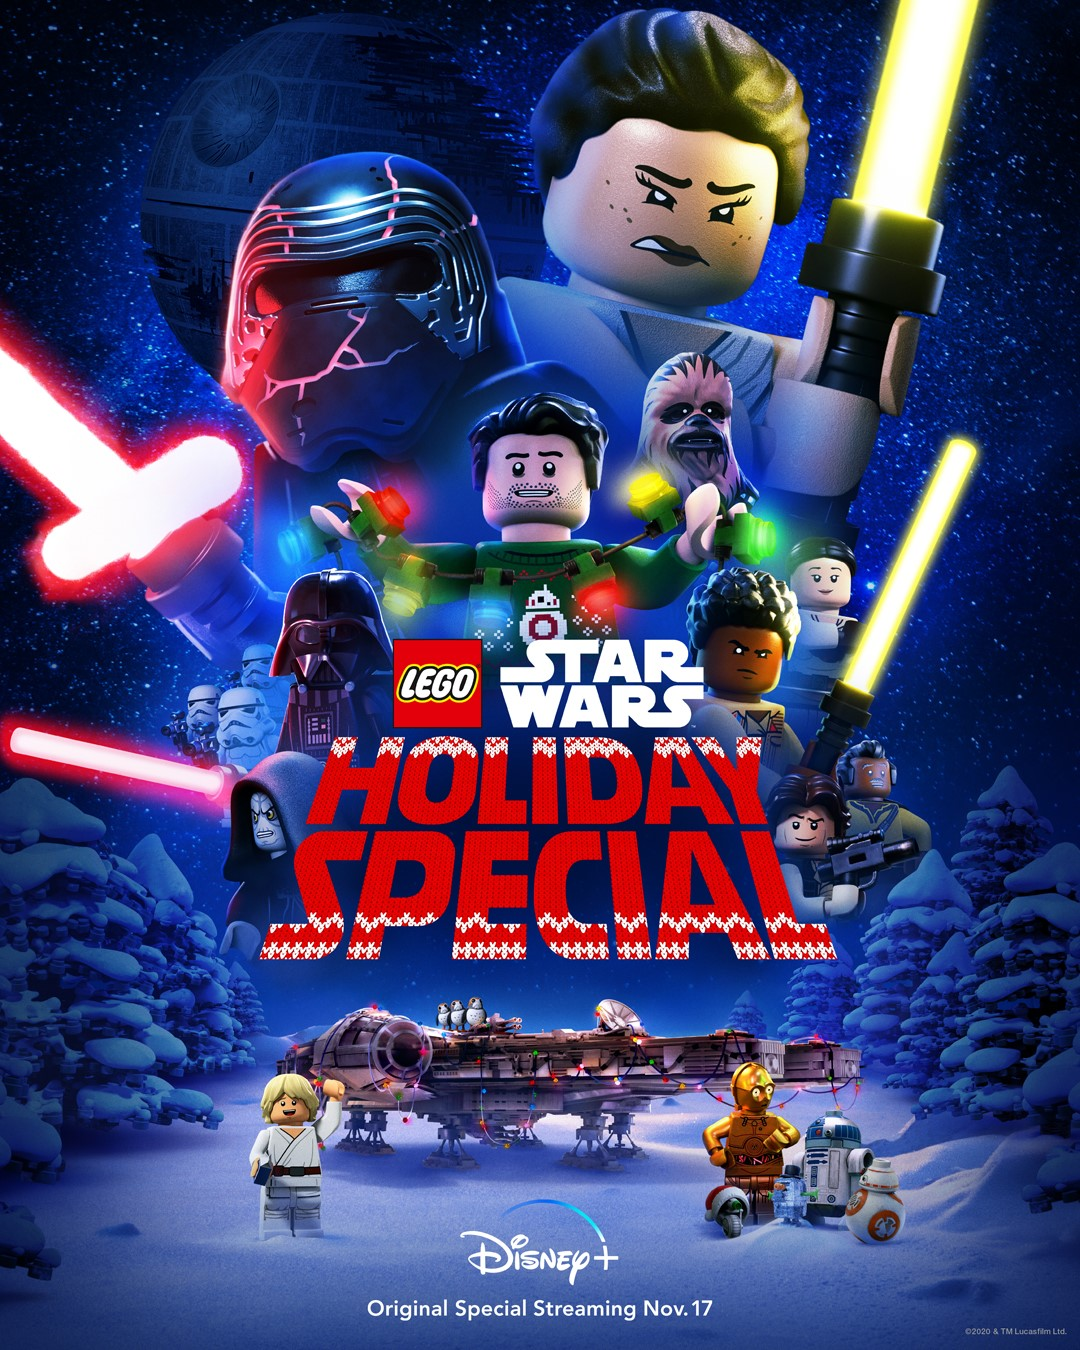 LEGO Star Wars Holiday Special Trailer Takes Rey to the Past